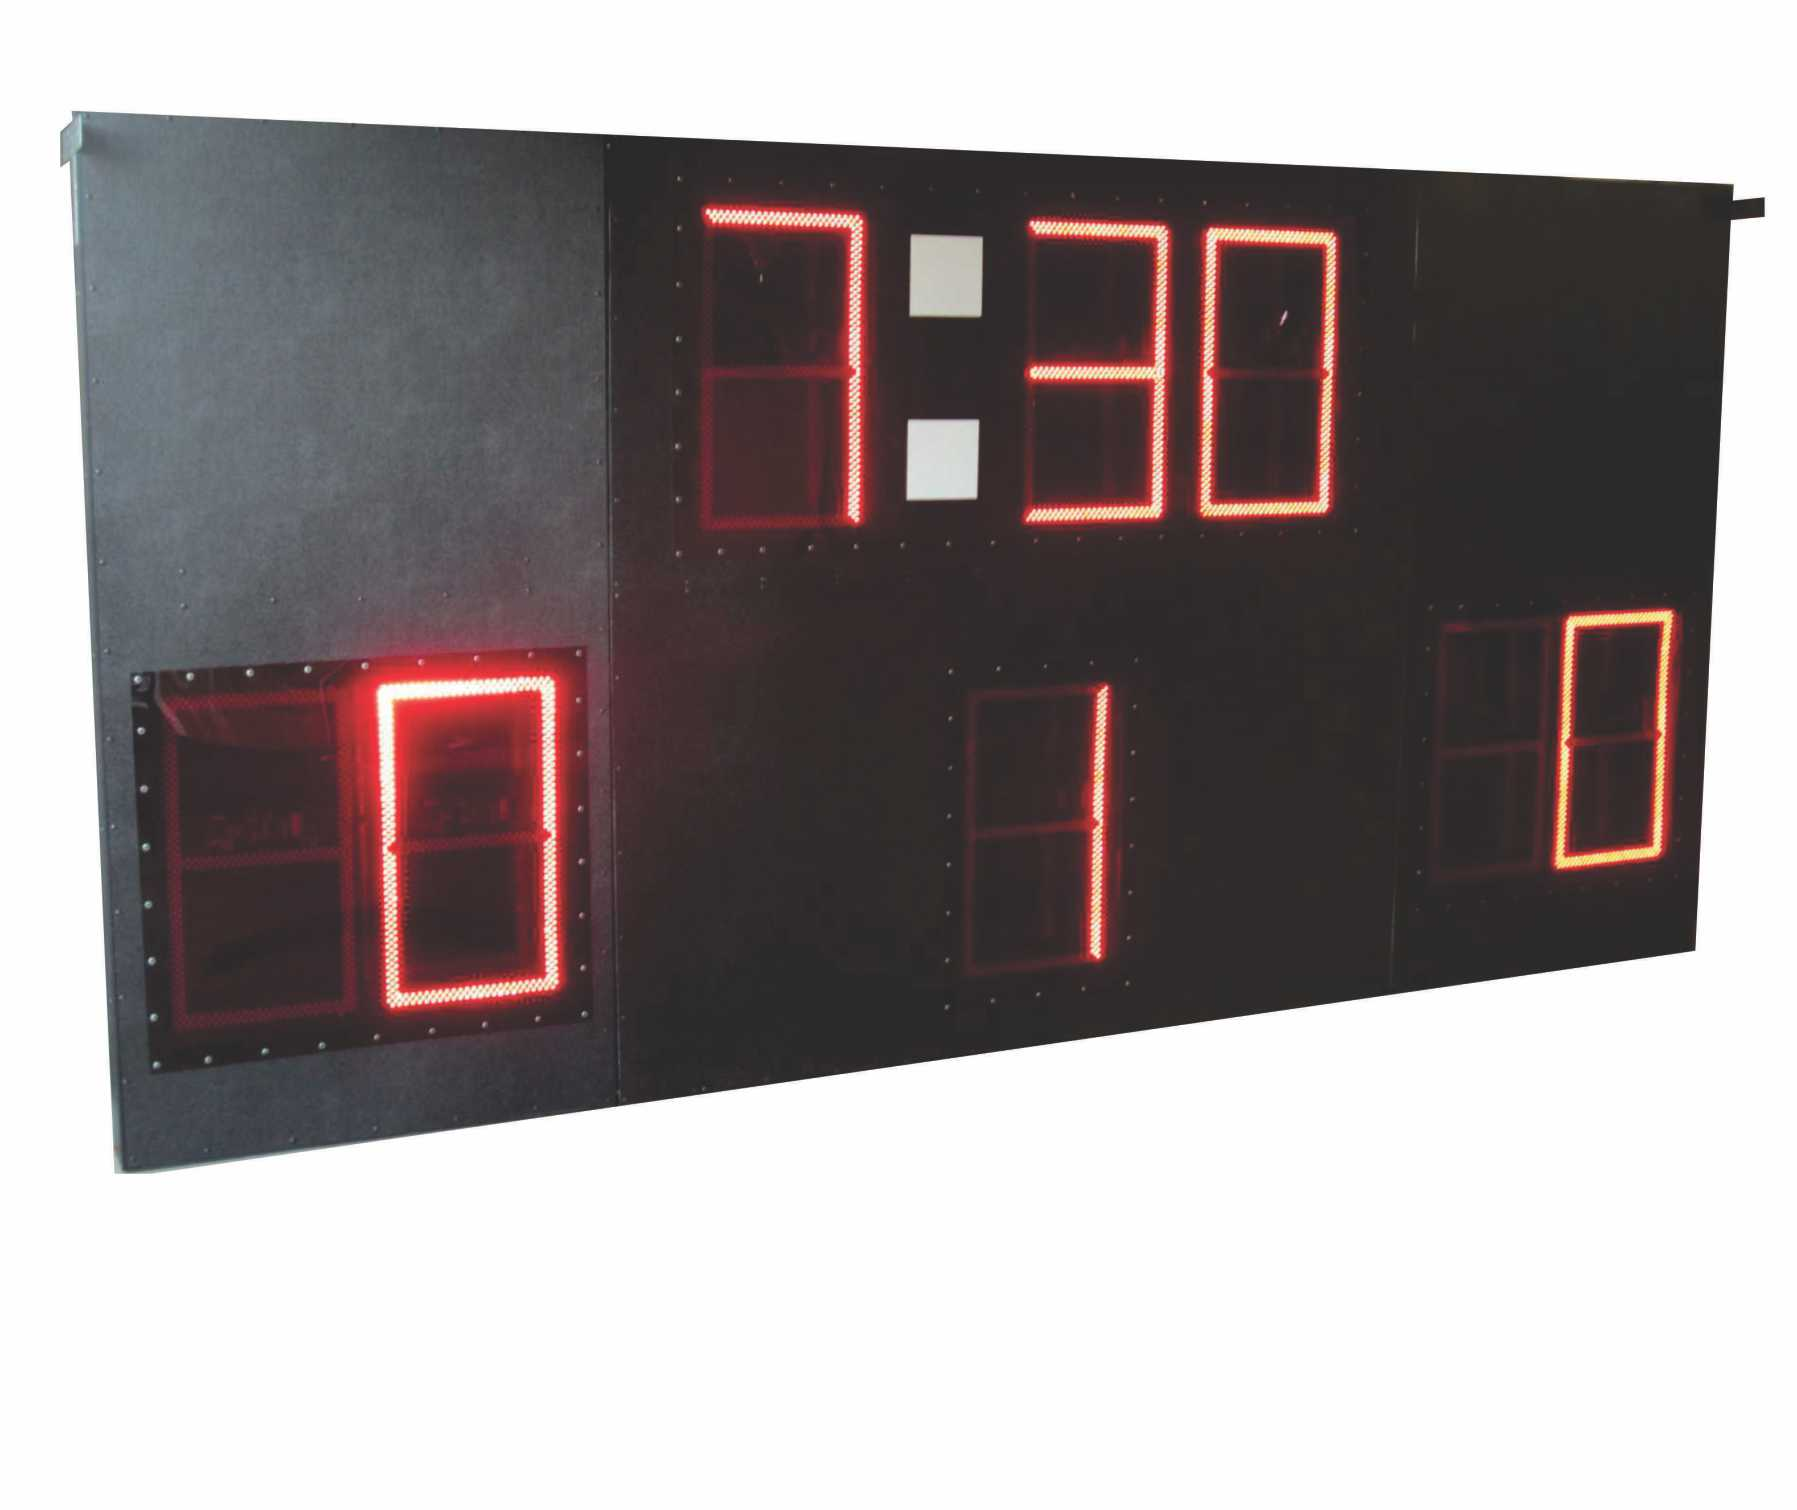 12 Foot x 6 Foot Wireless Scoreboard